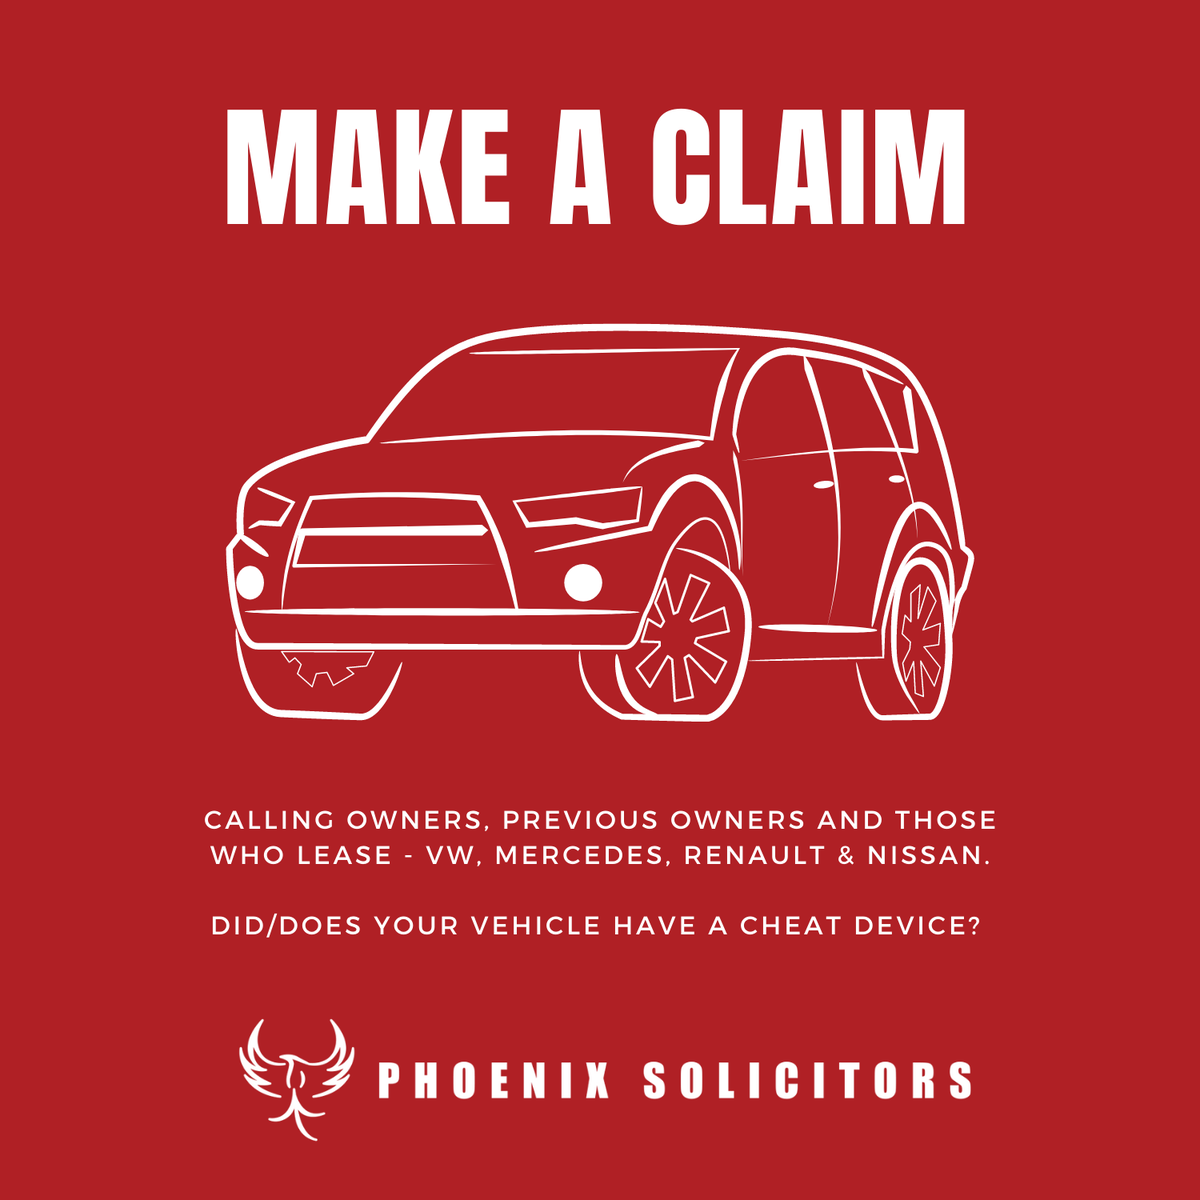 Many #VW, #Mercedes, #Renault, #Nissan & other car manufacturers are accused of fitting #cheatdevices to vehicles. Do you own, previously own or lease an affected vehicle? You could claim THOUSANDS in #compensation. For more info and to #claim now, visit https://t.co/RhRTfy8xfI. https://t.co/UOVJRiKN72